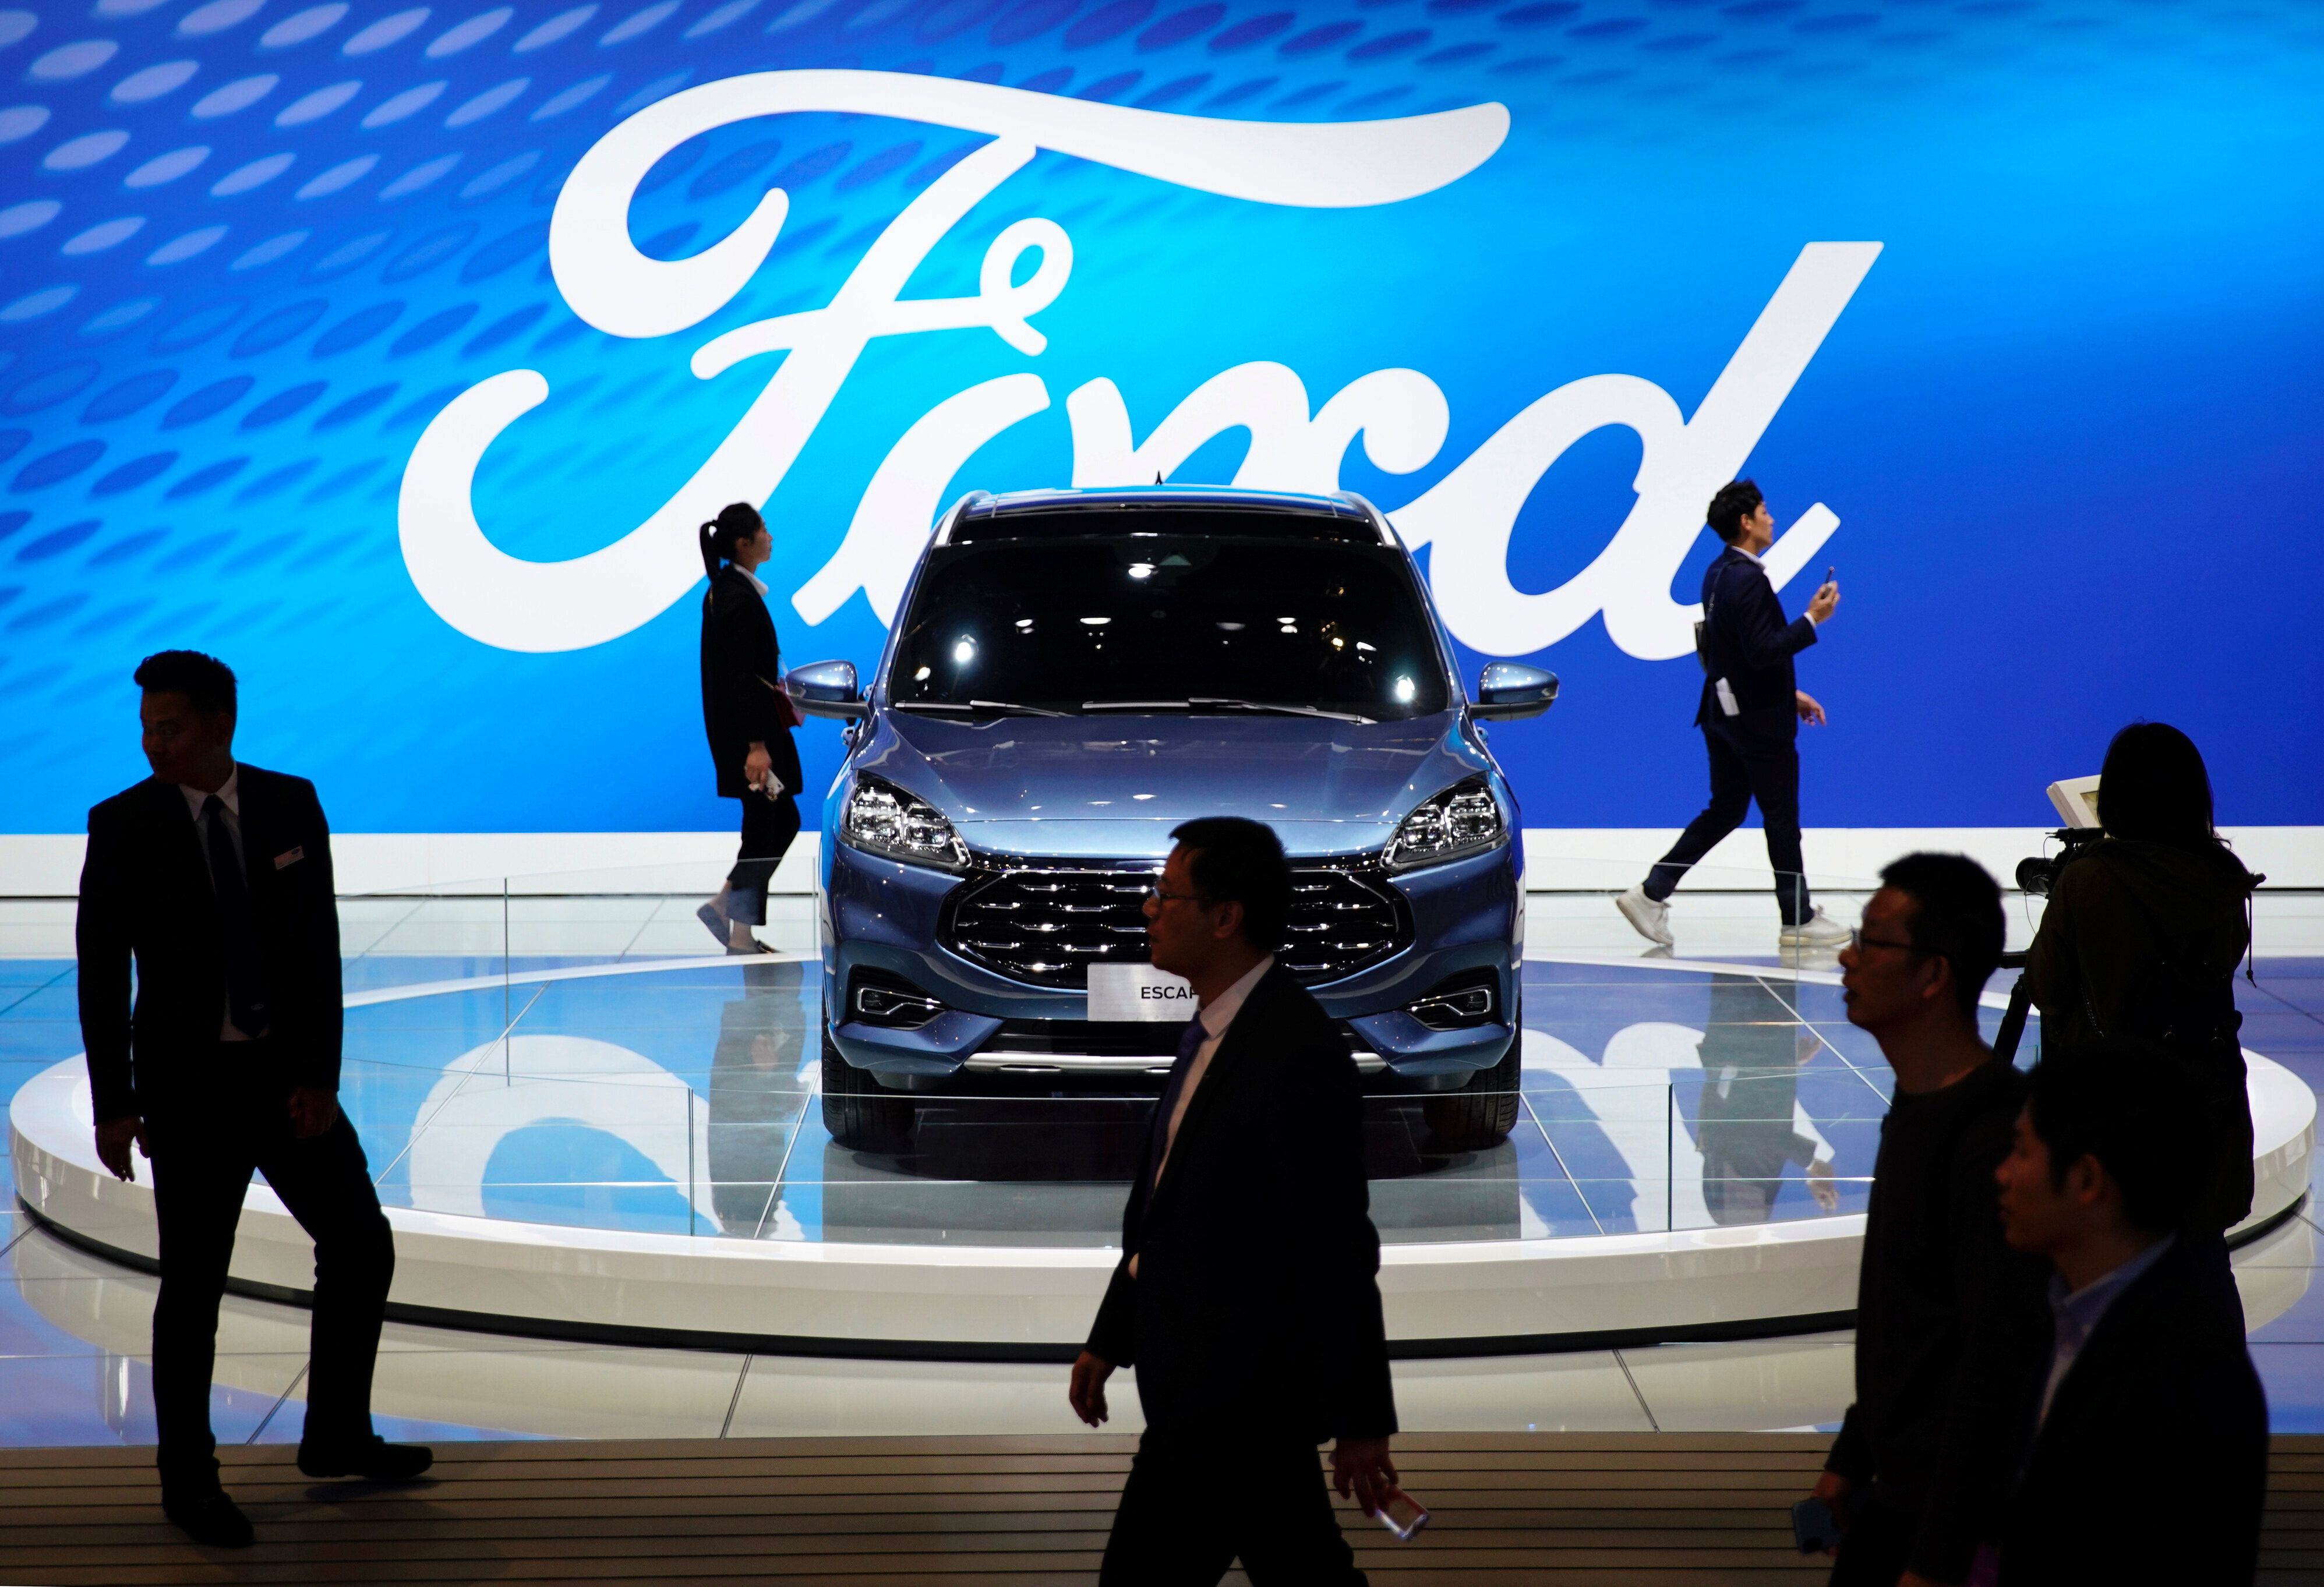 People walk by a Ford Escape SUV displayed during the media day for the Shanghai auto show in Shanghai, China April 16, 2019. REUTERS/Aly Song